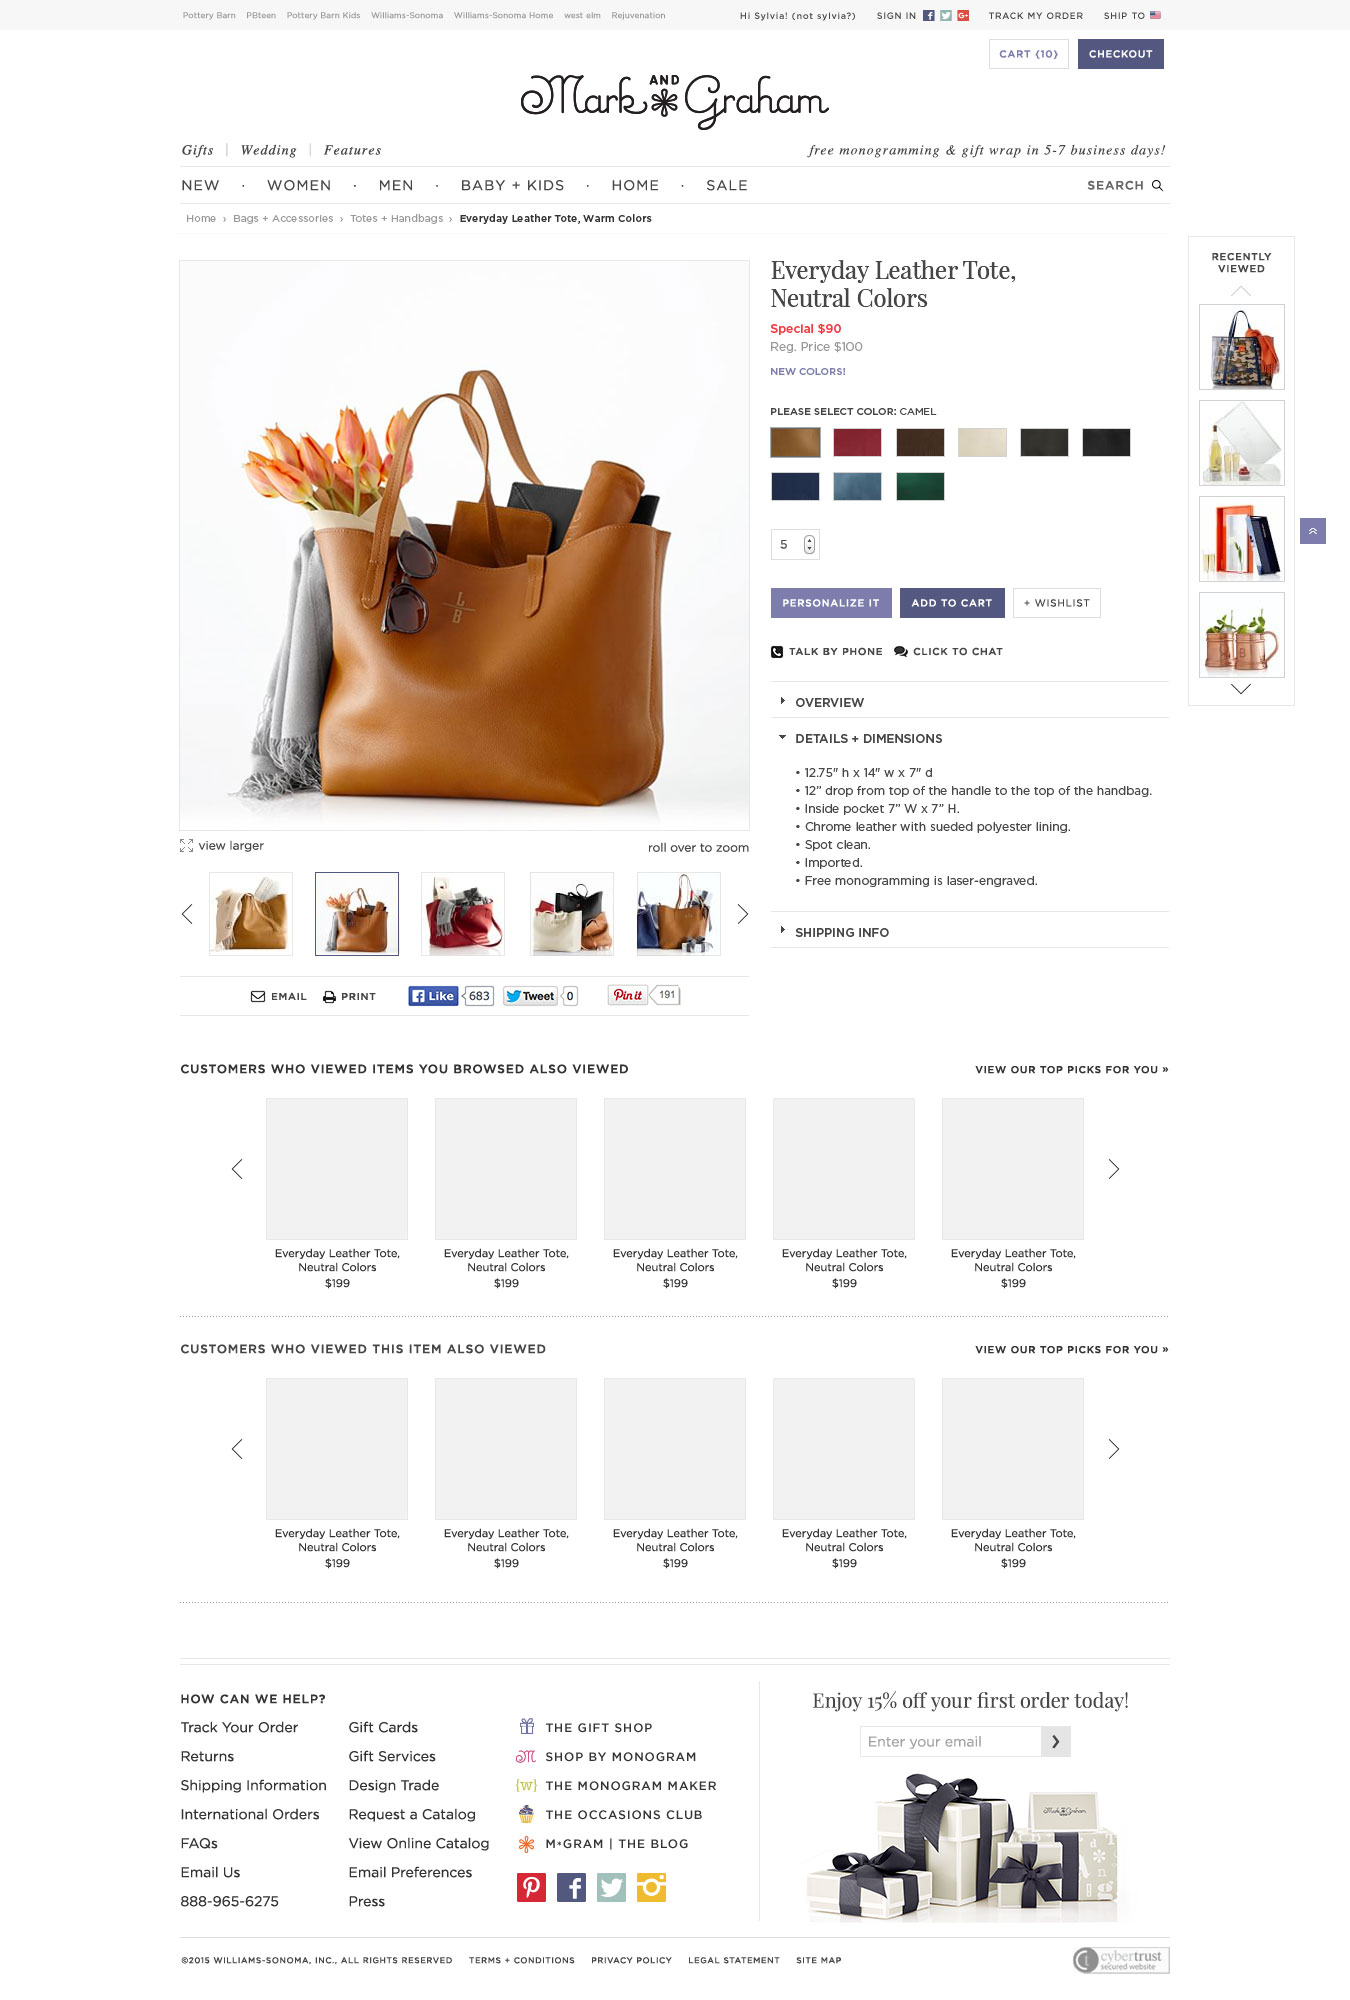 ecommerce-web-design-product-page.jpg